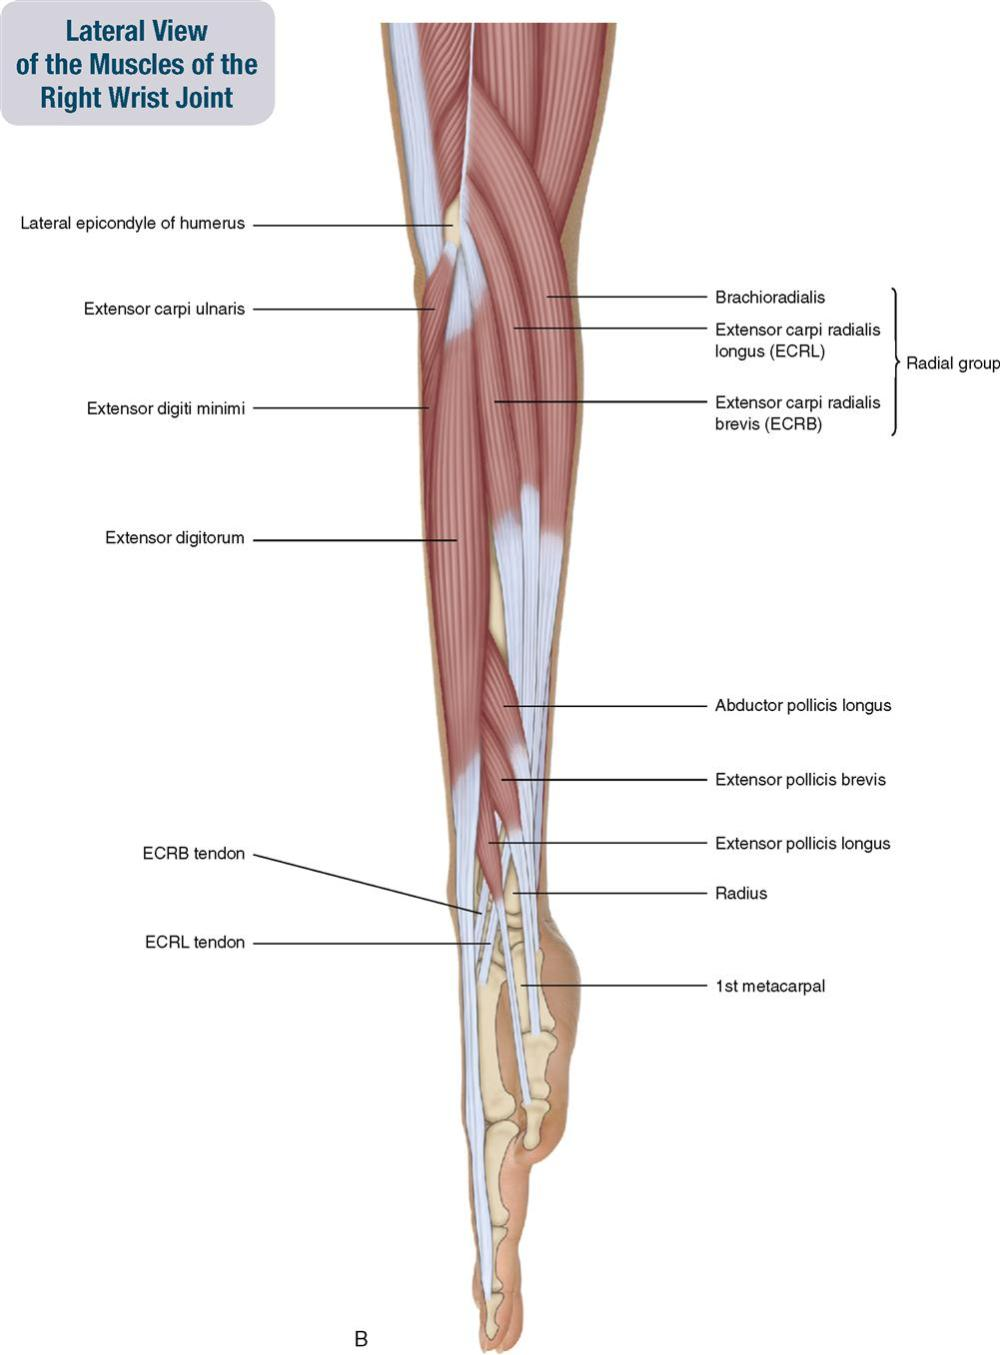 medium resolution of figure 7 3 a medial view of the muscles of the right wrist joint b lateral view of the muscles of the right wrist joint